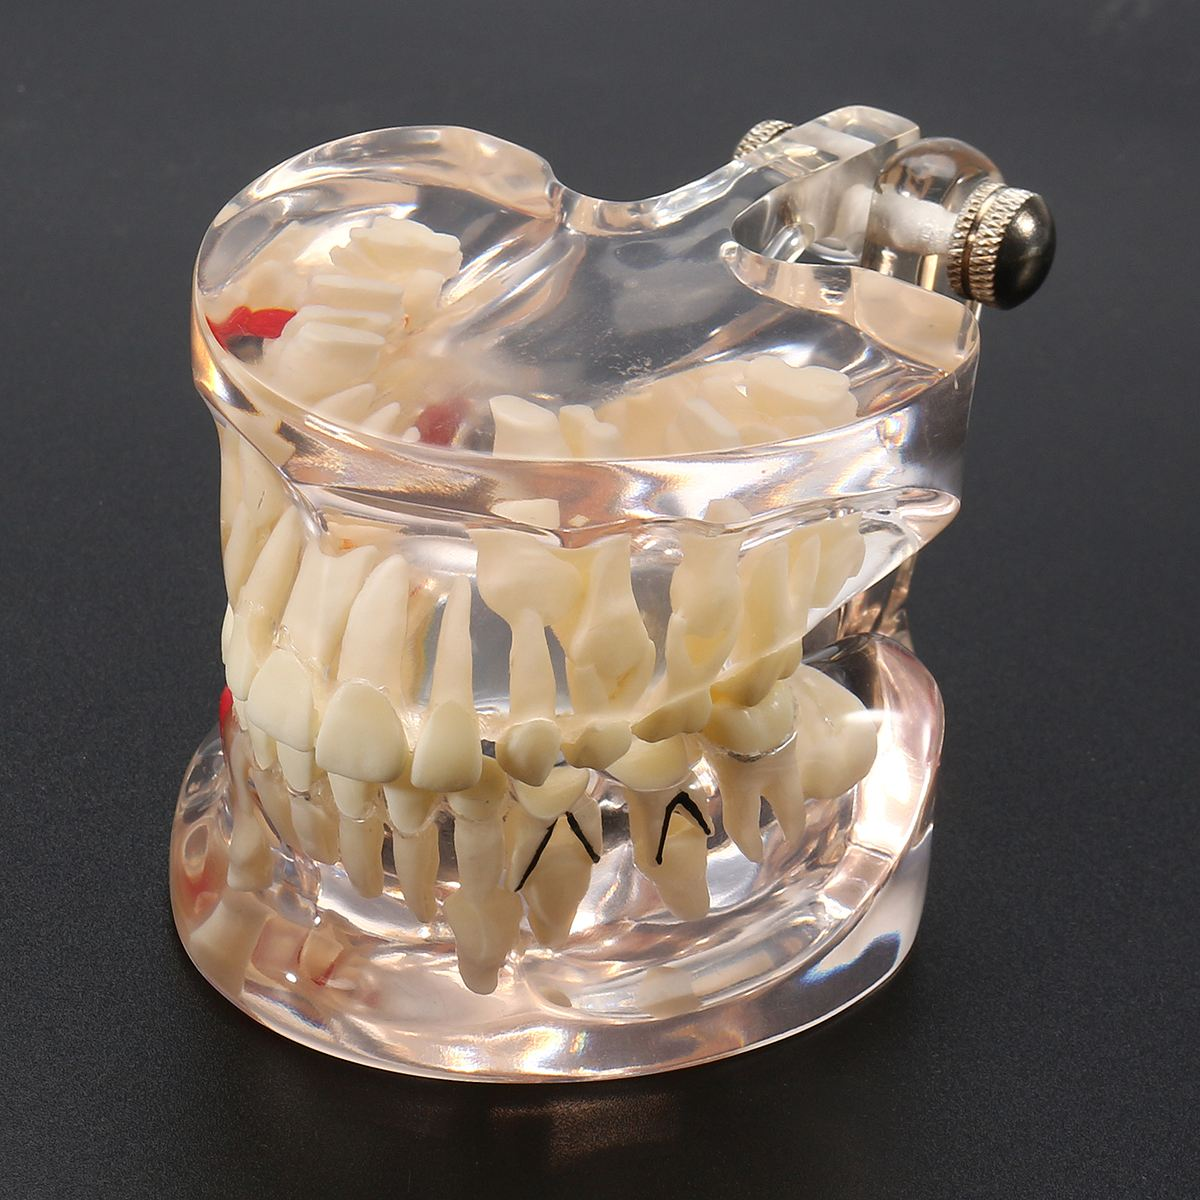 Dental Premature Disease Teeth Model Transparent Caries Pathological Demonstration Tooth Child Study Teaching Showing 2018<br>